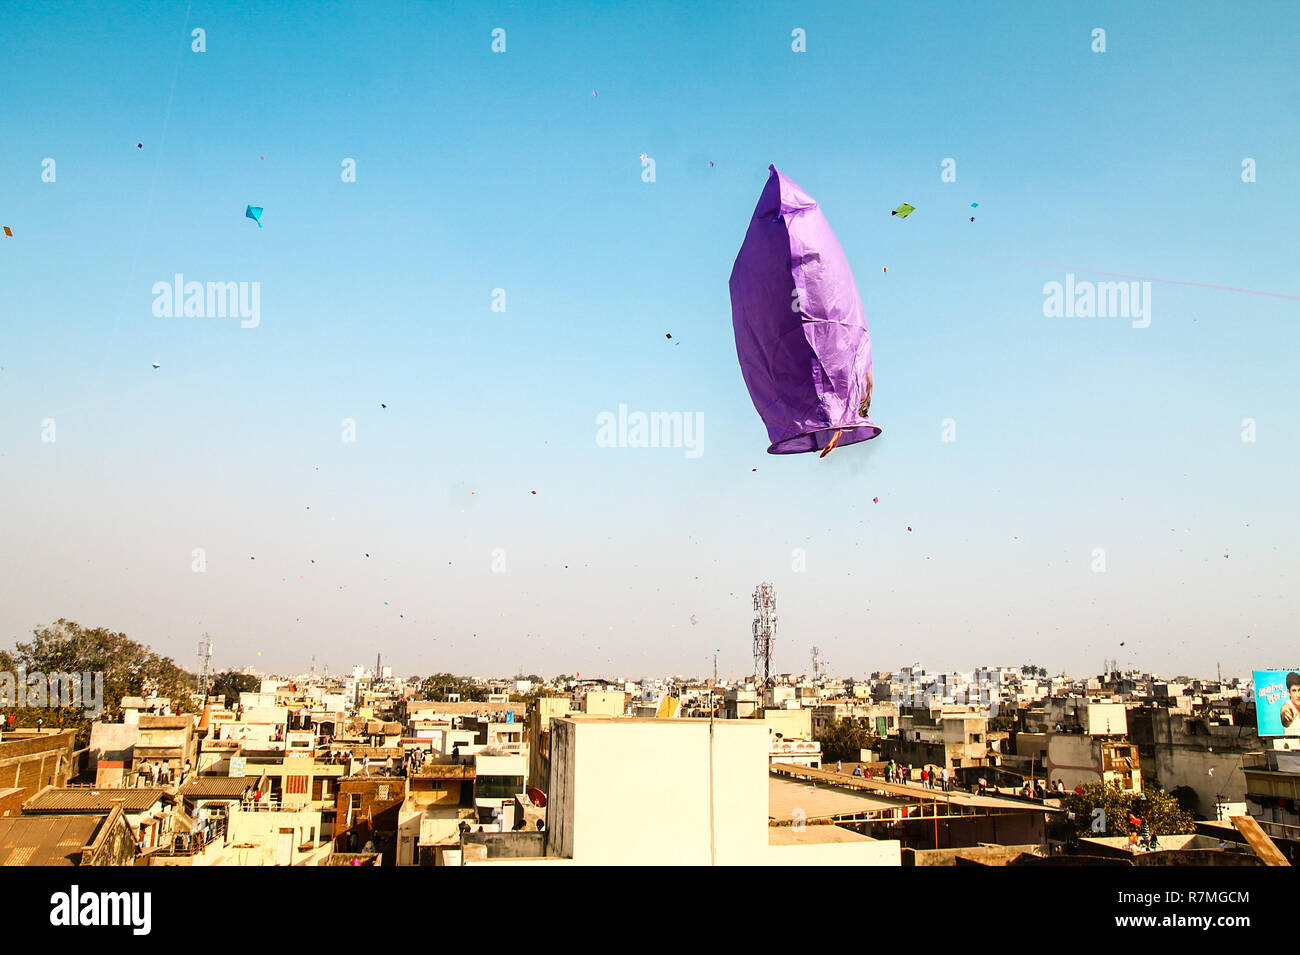 fire kite flying over clear blue sky during traditional hindu kite festival in indian city Stock Photo